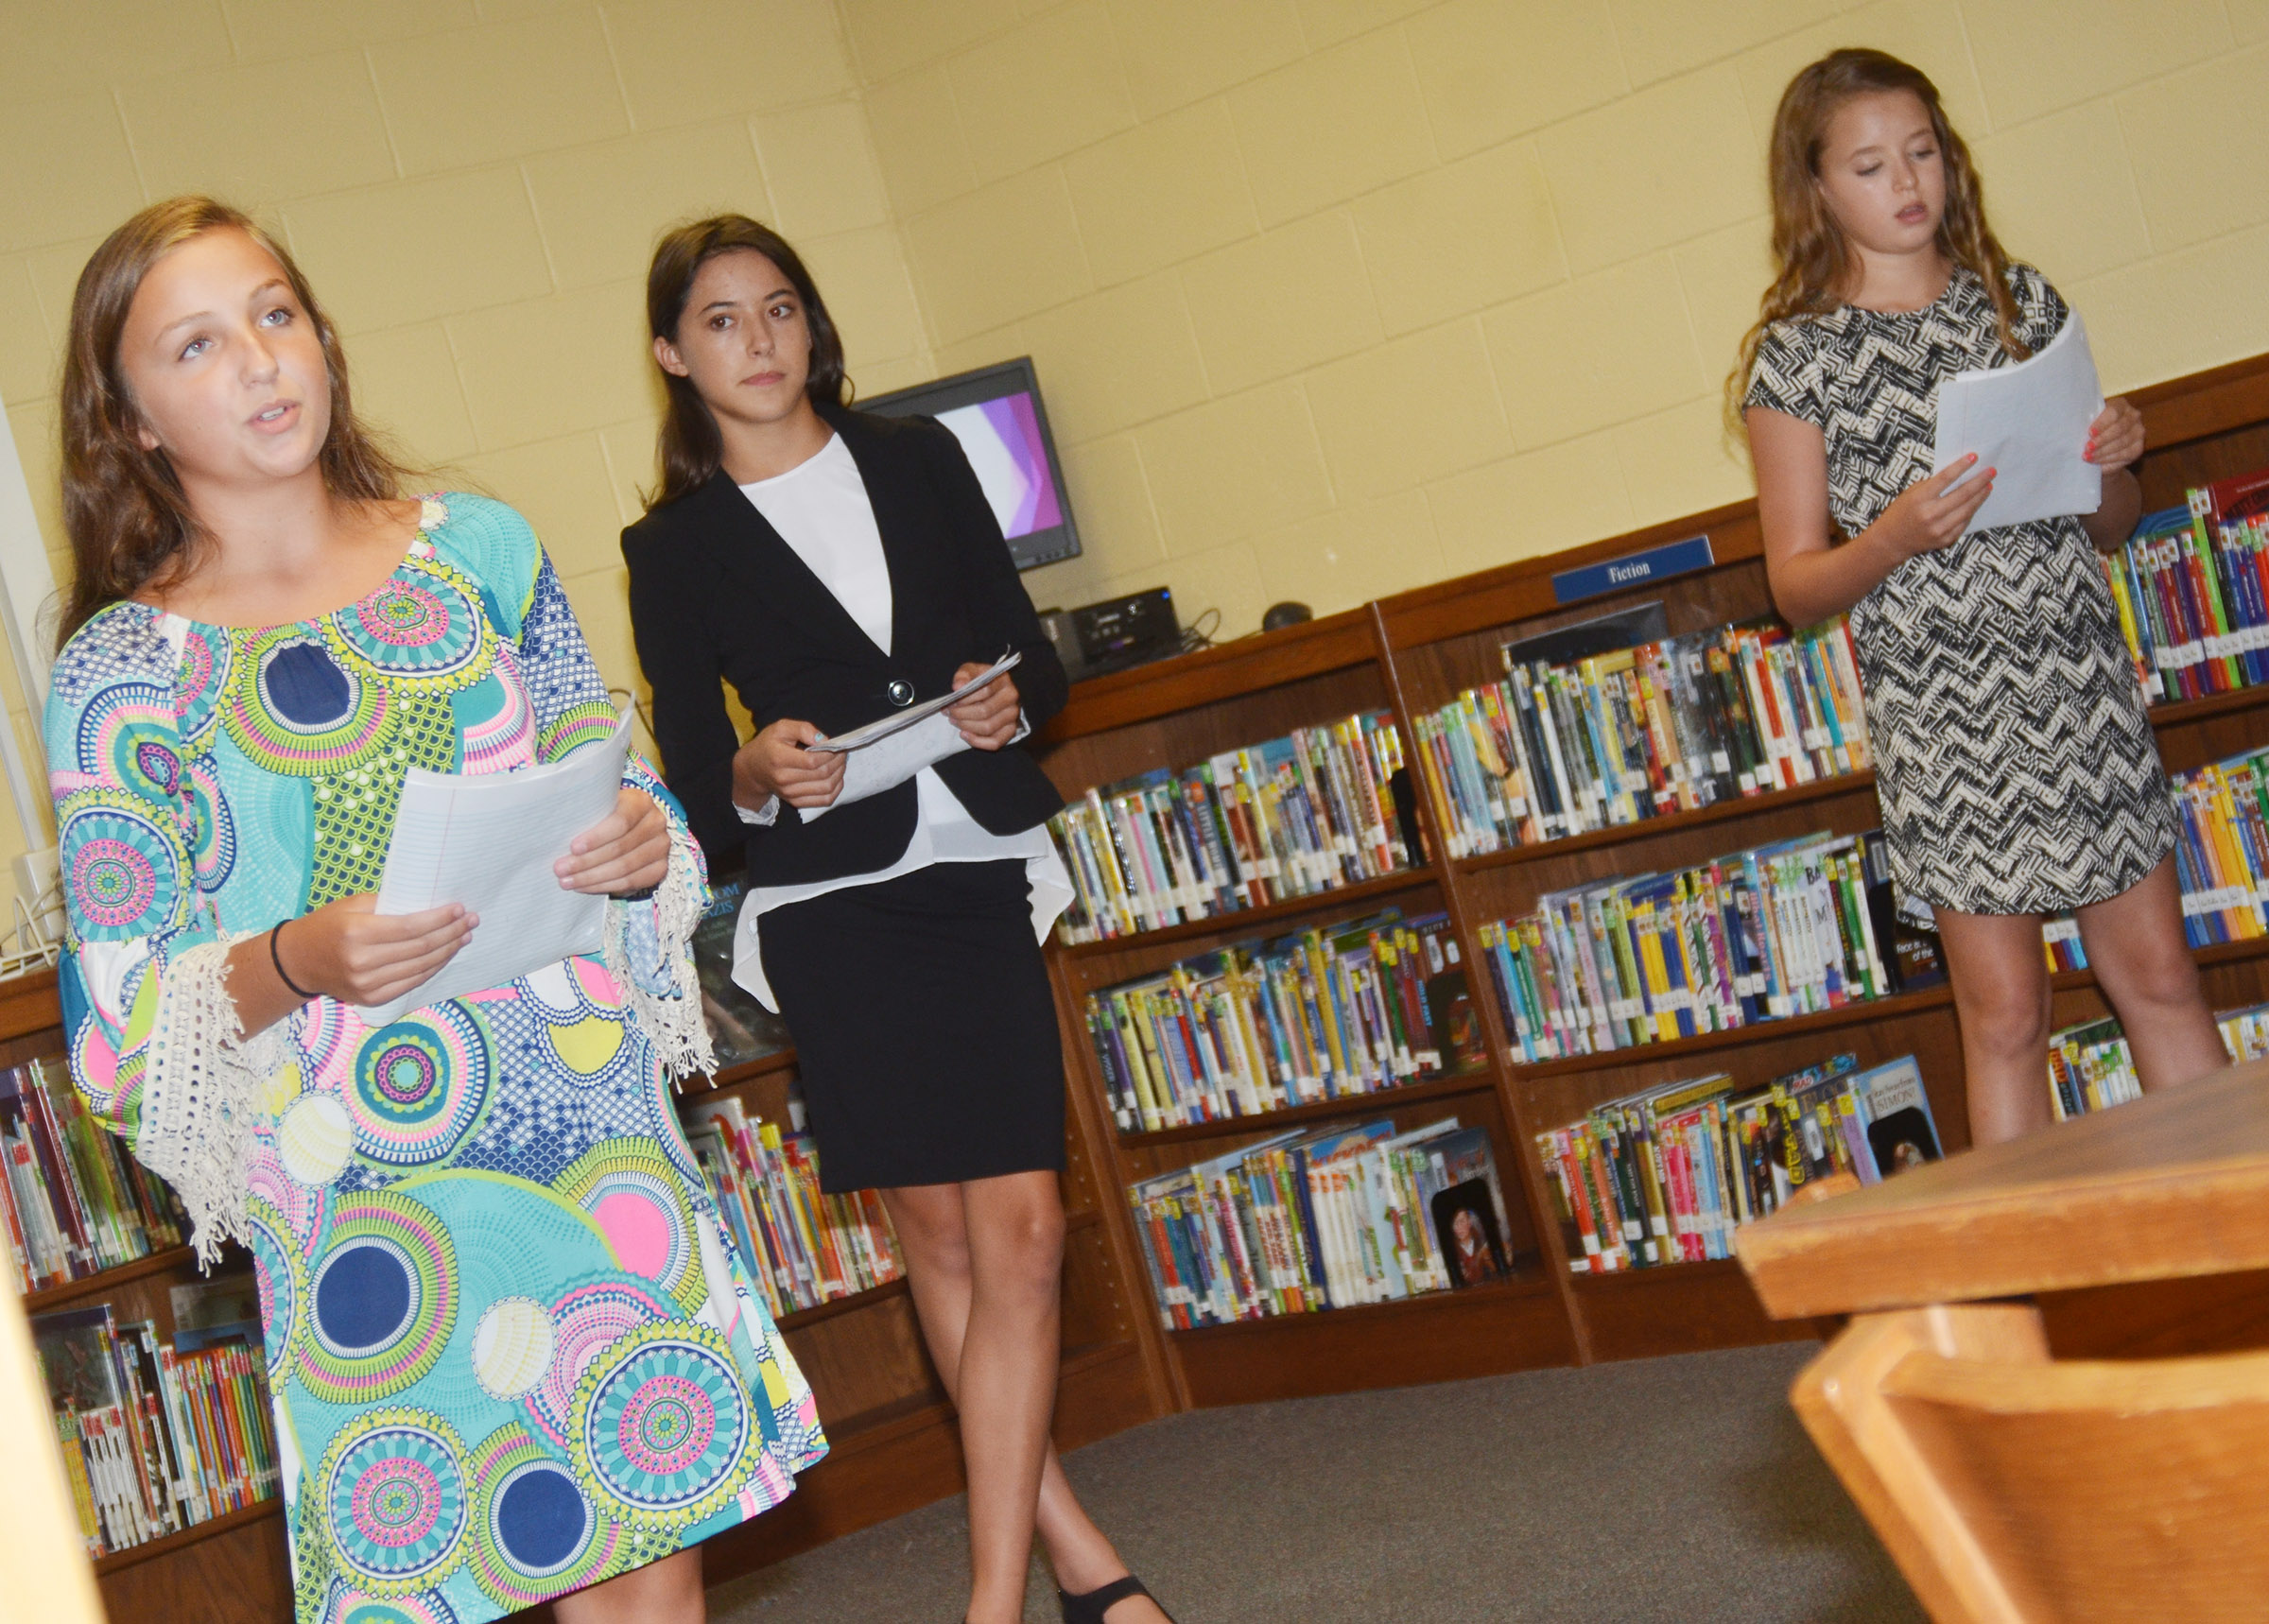 CMS eighth-graders, from left, Lainey Watson, Kaylyn Smith and Rylee Petett talk about how the Leader in Me program at CMS has changed their lives.